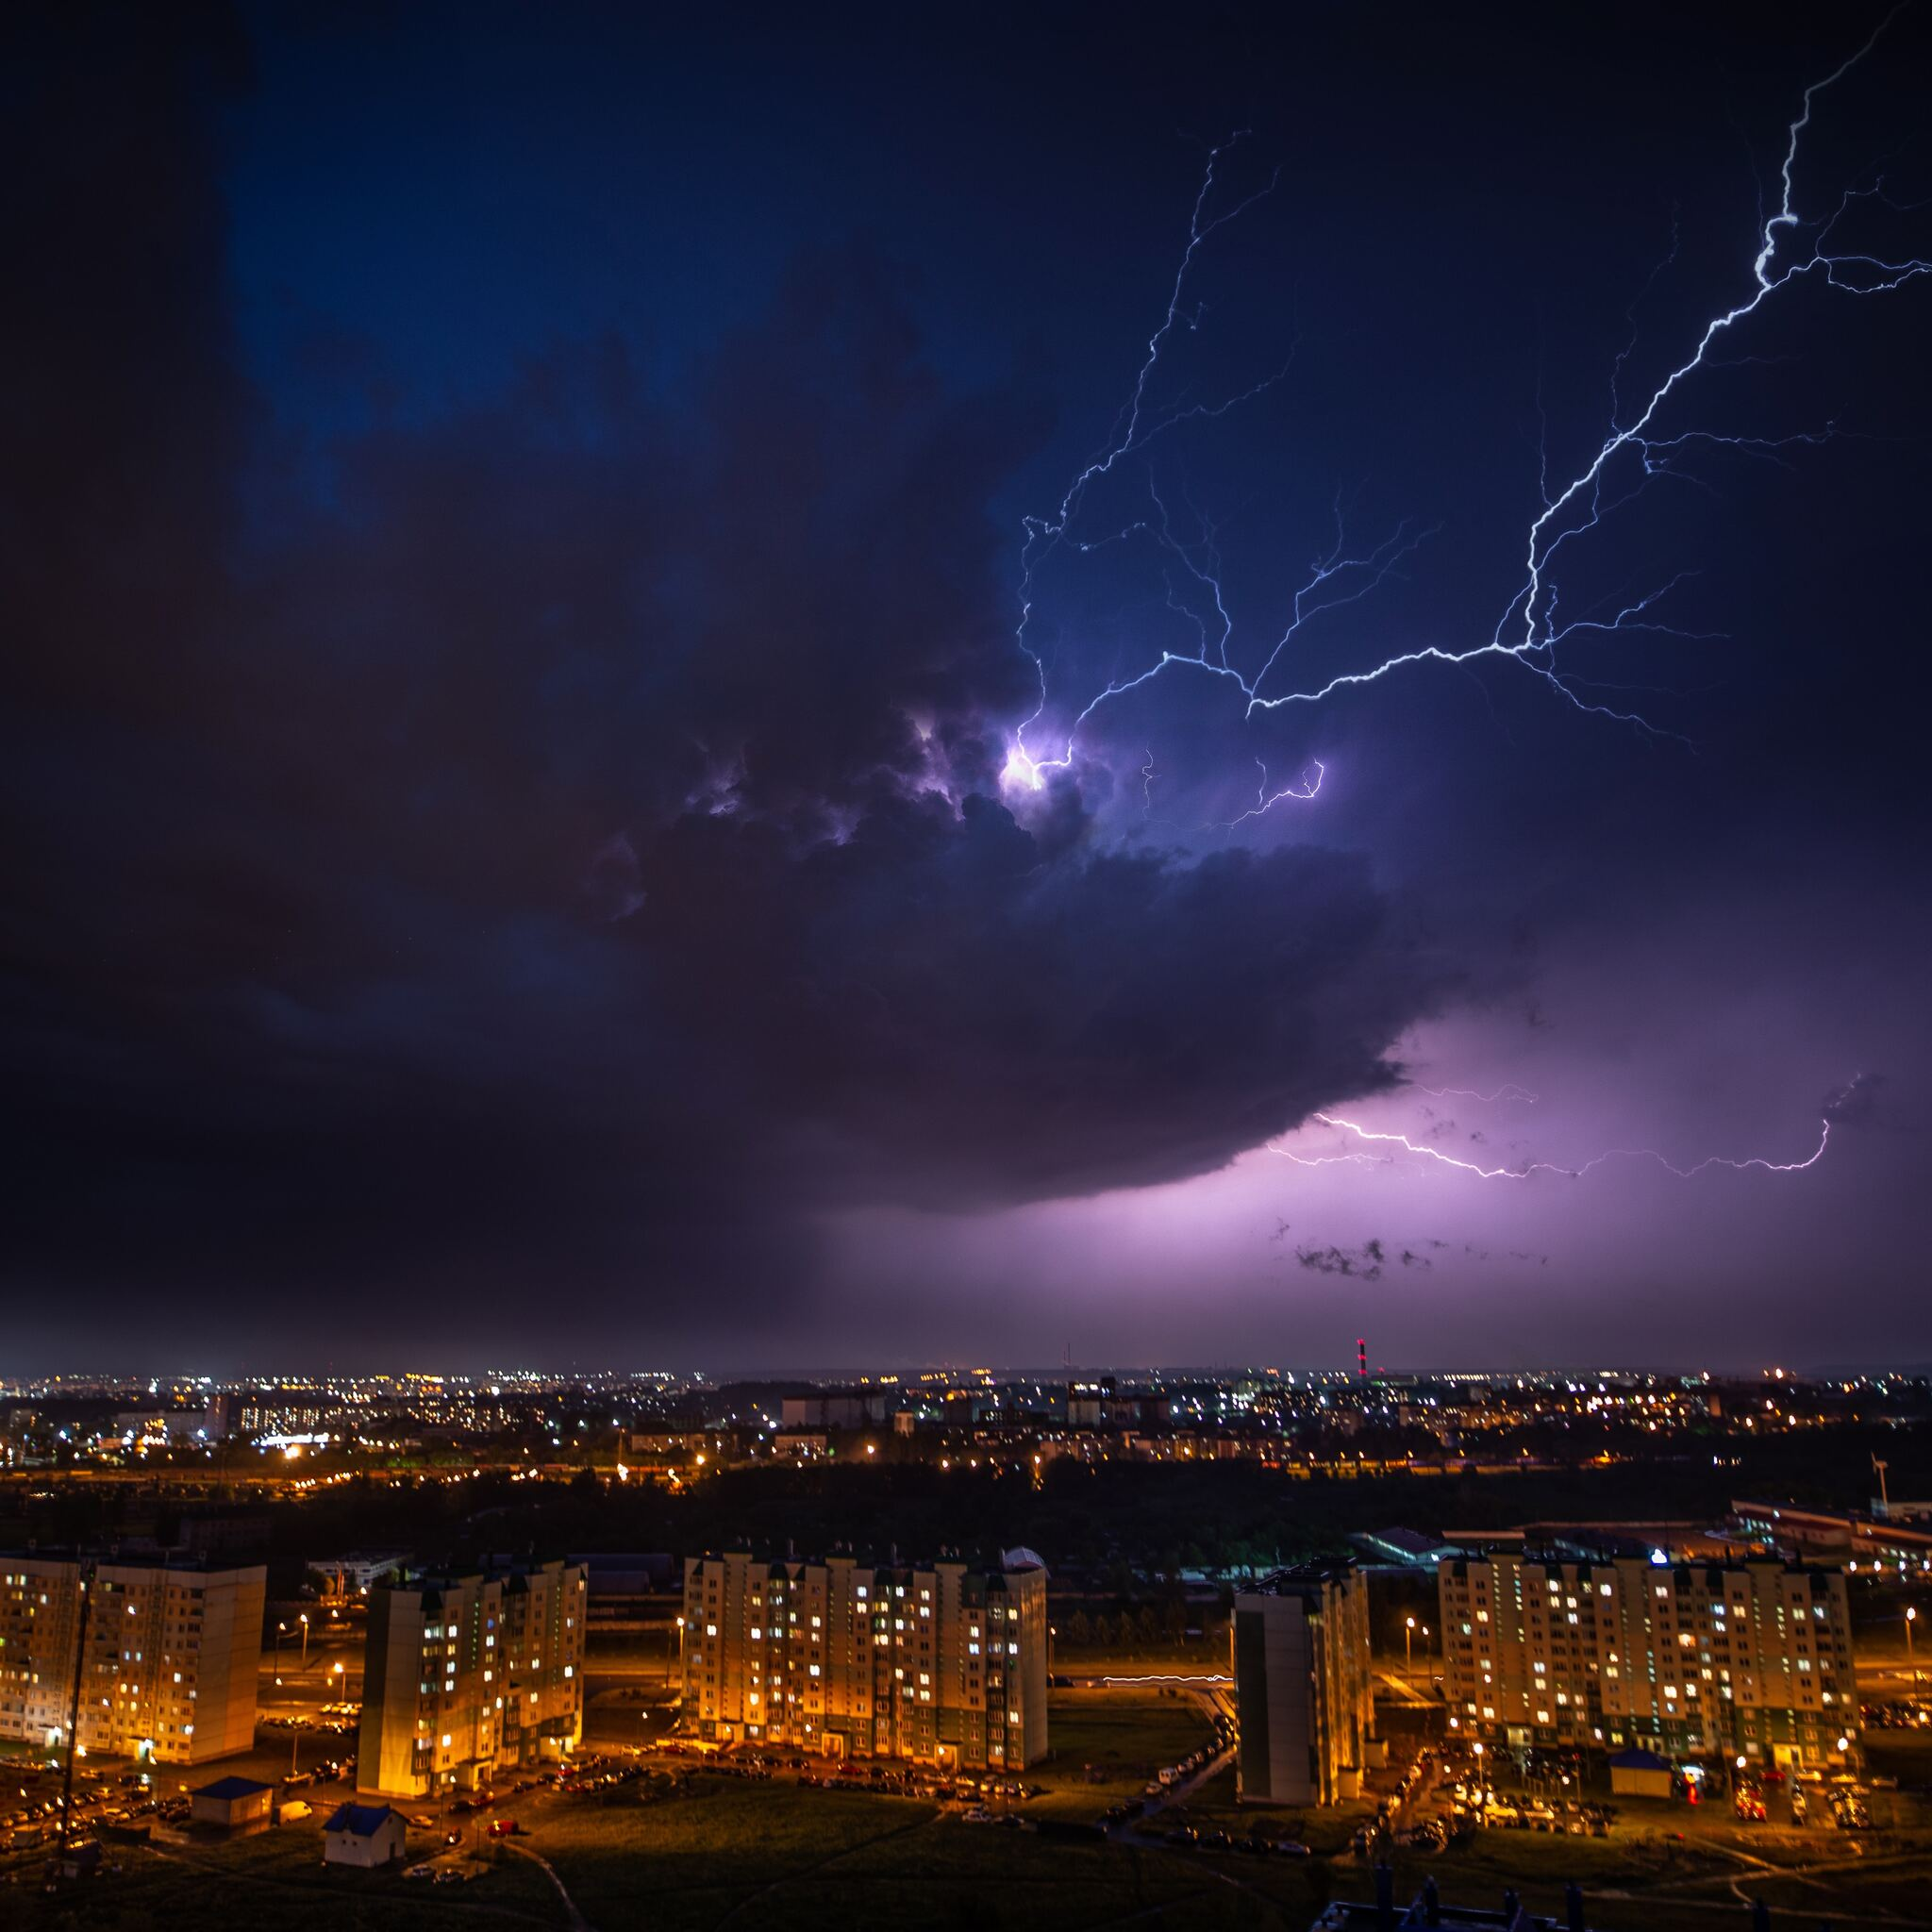 cityscape-lightning-under-purple-sky-5k-po.jpg